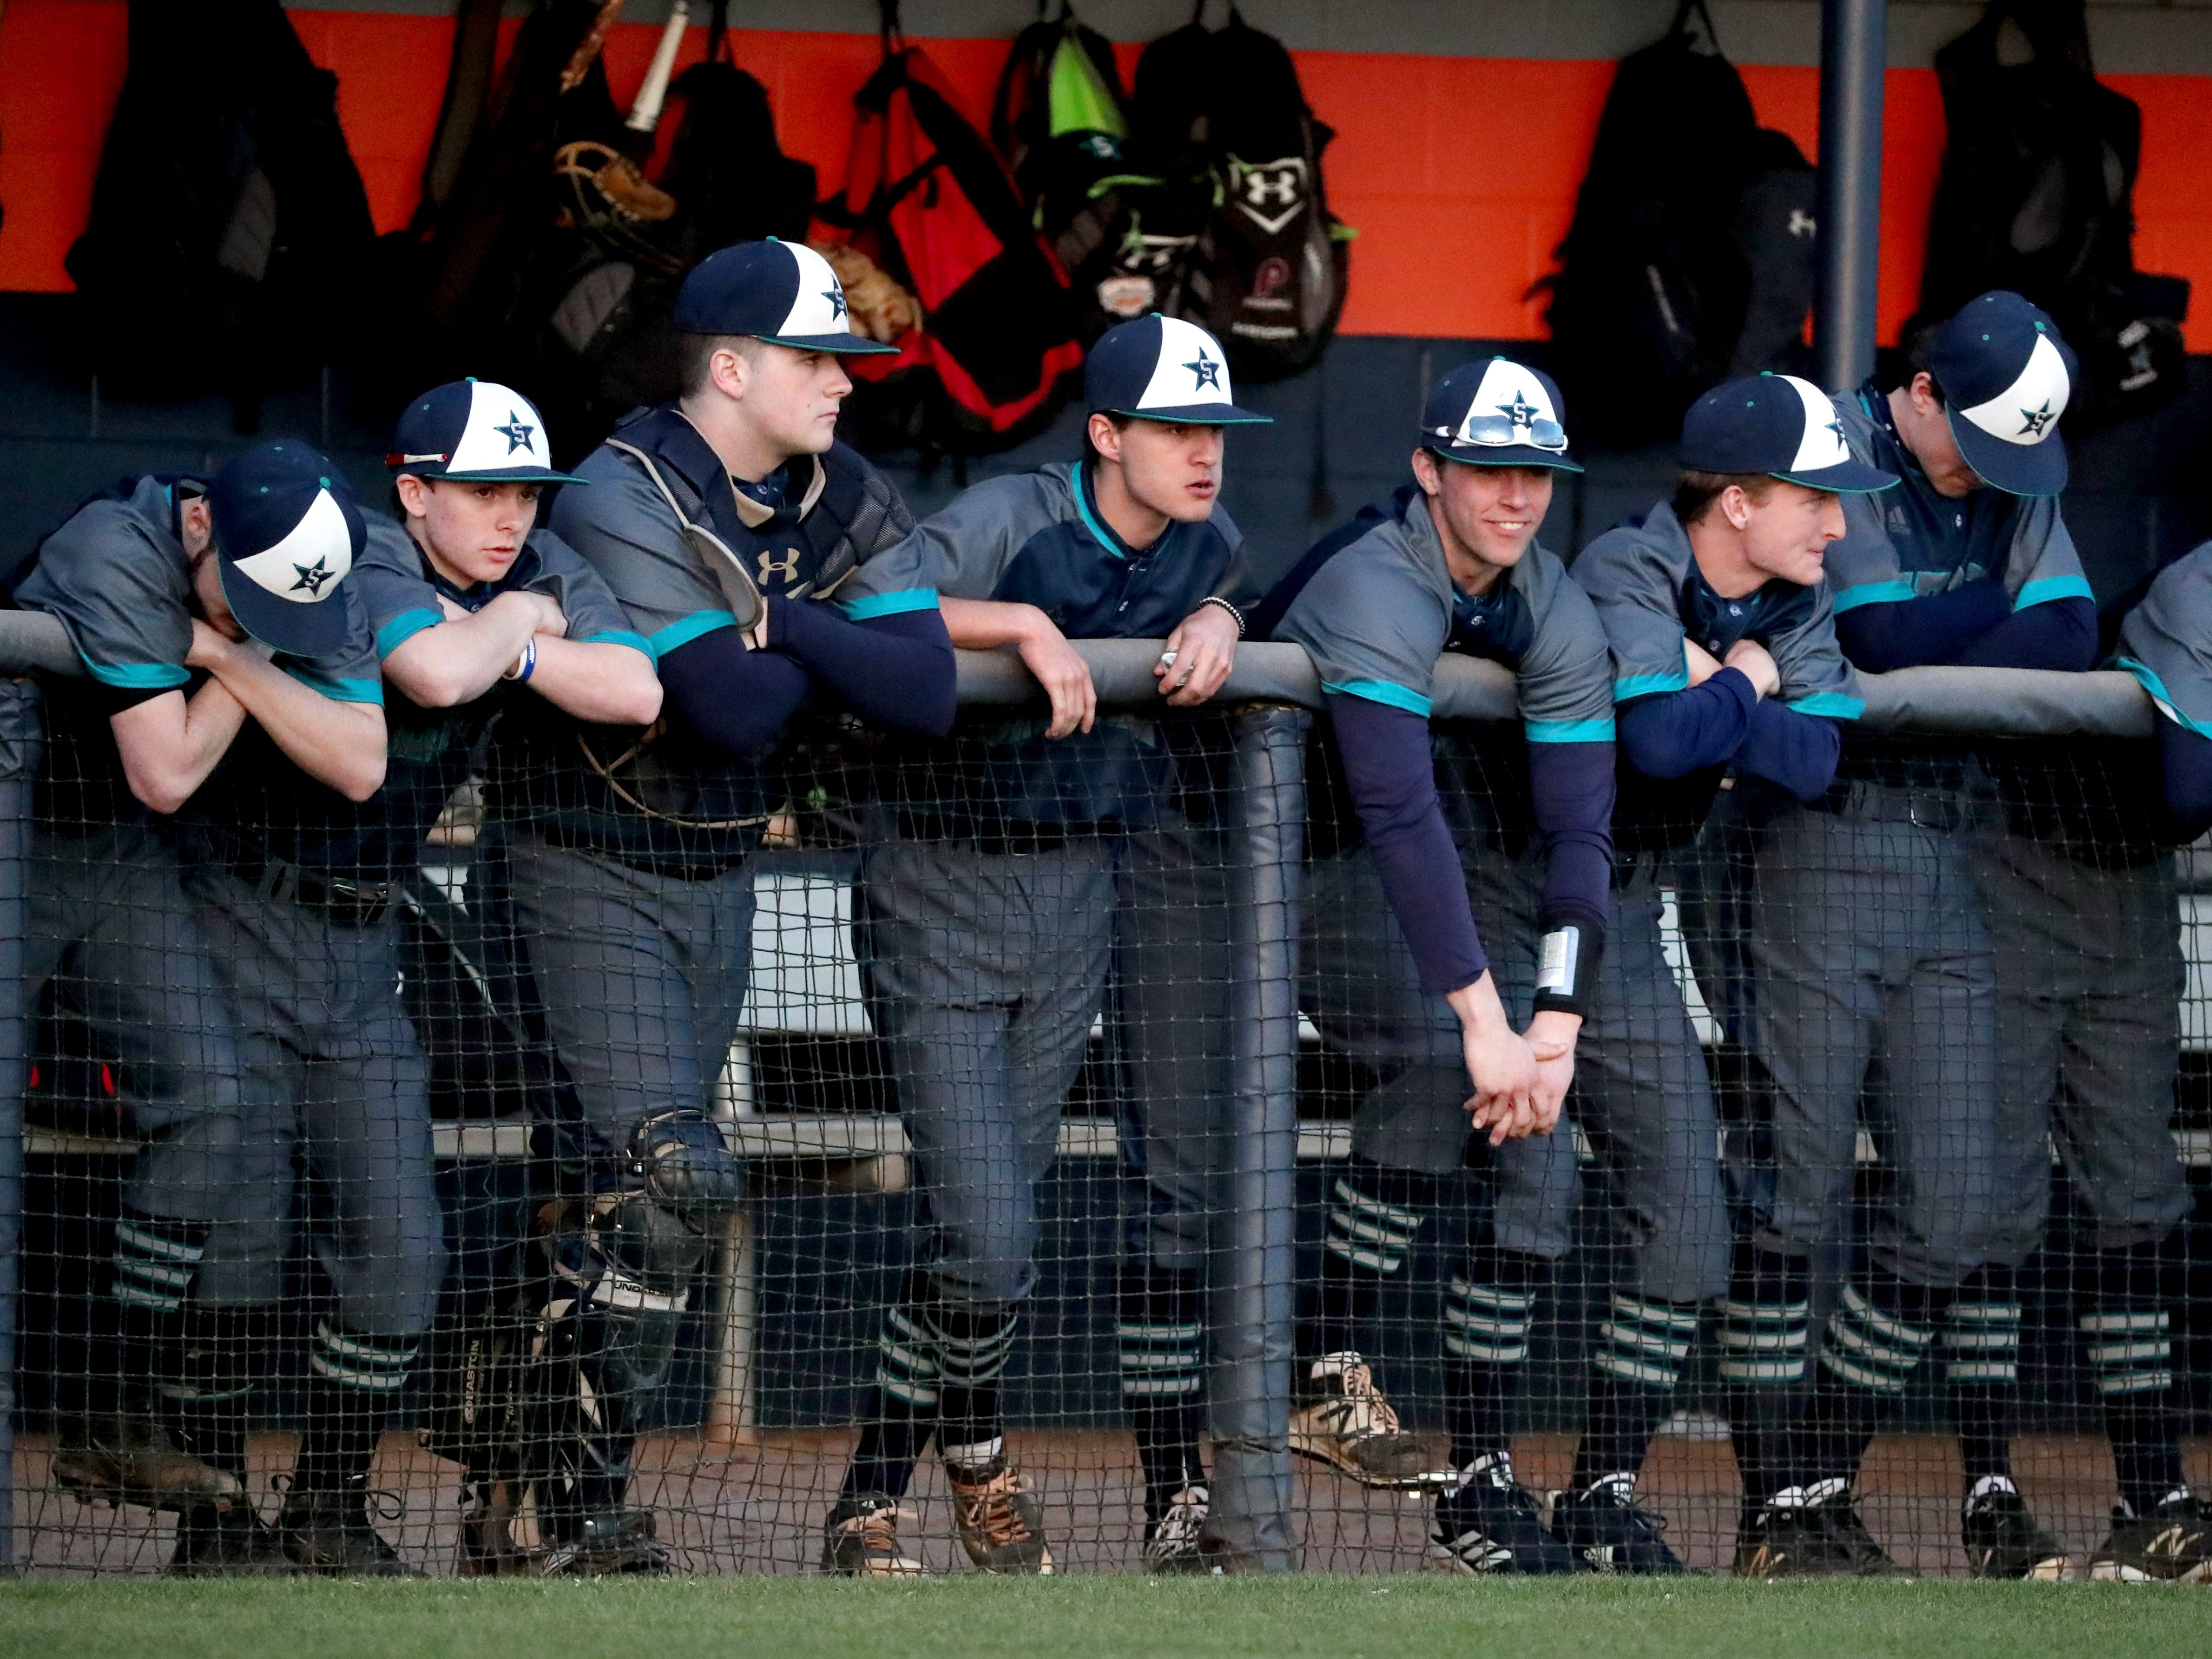 Siegel players watch the game against Blackman from the dugout on Monday, March 11, 2019.